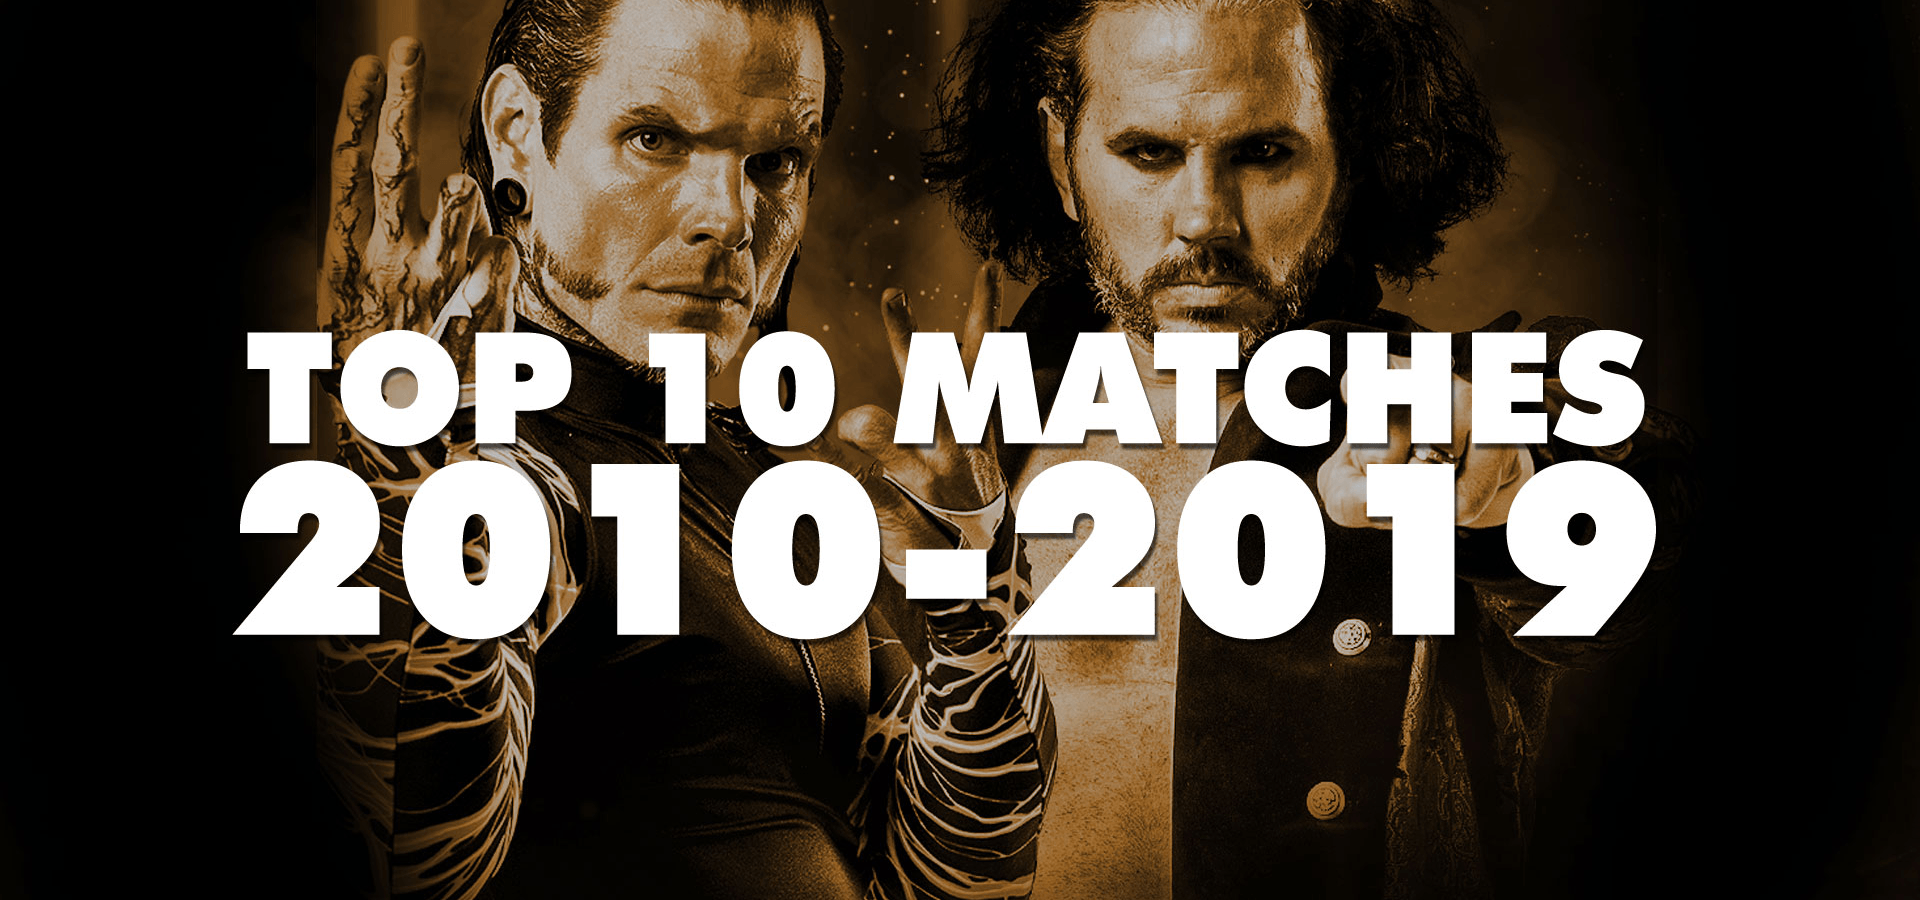 Top 10 Matches of the Decade 2010-2019